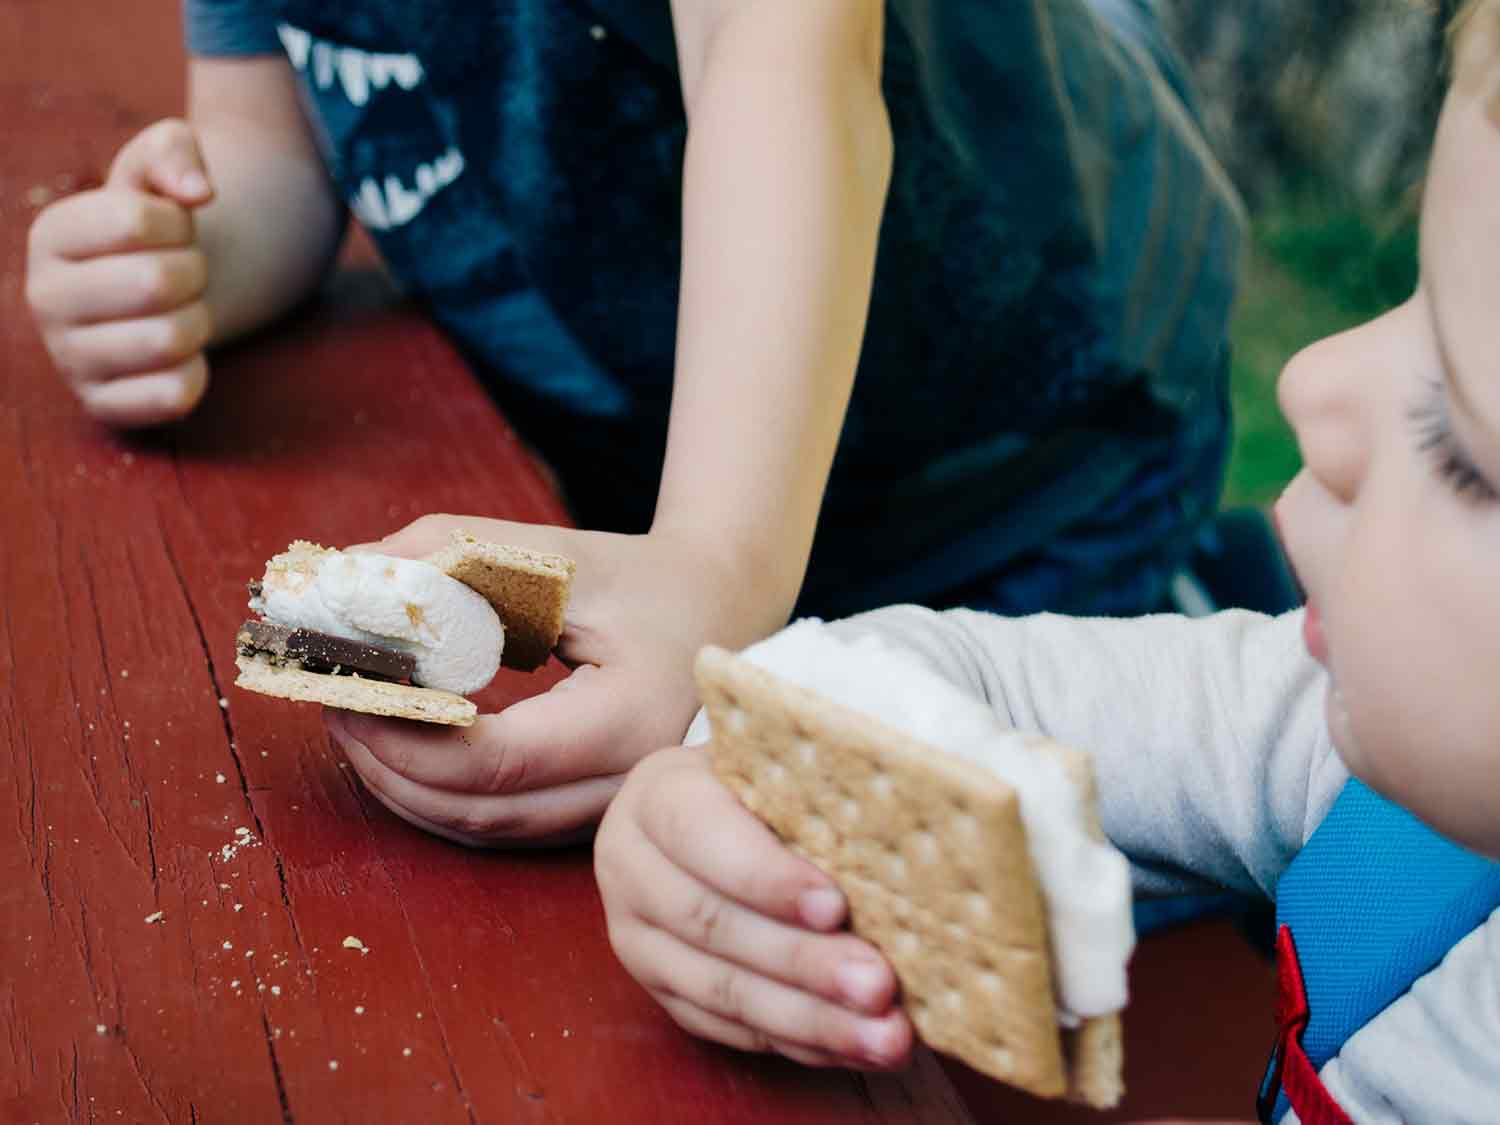 Kids eating s'mores.